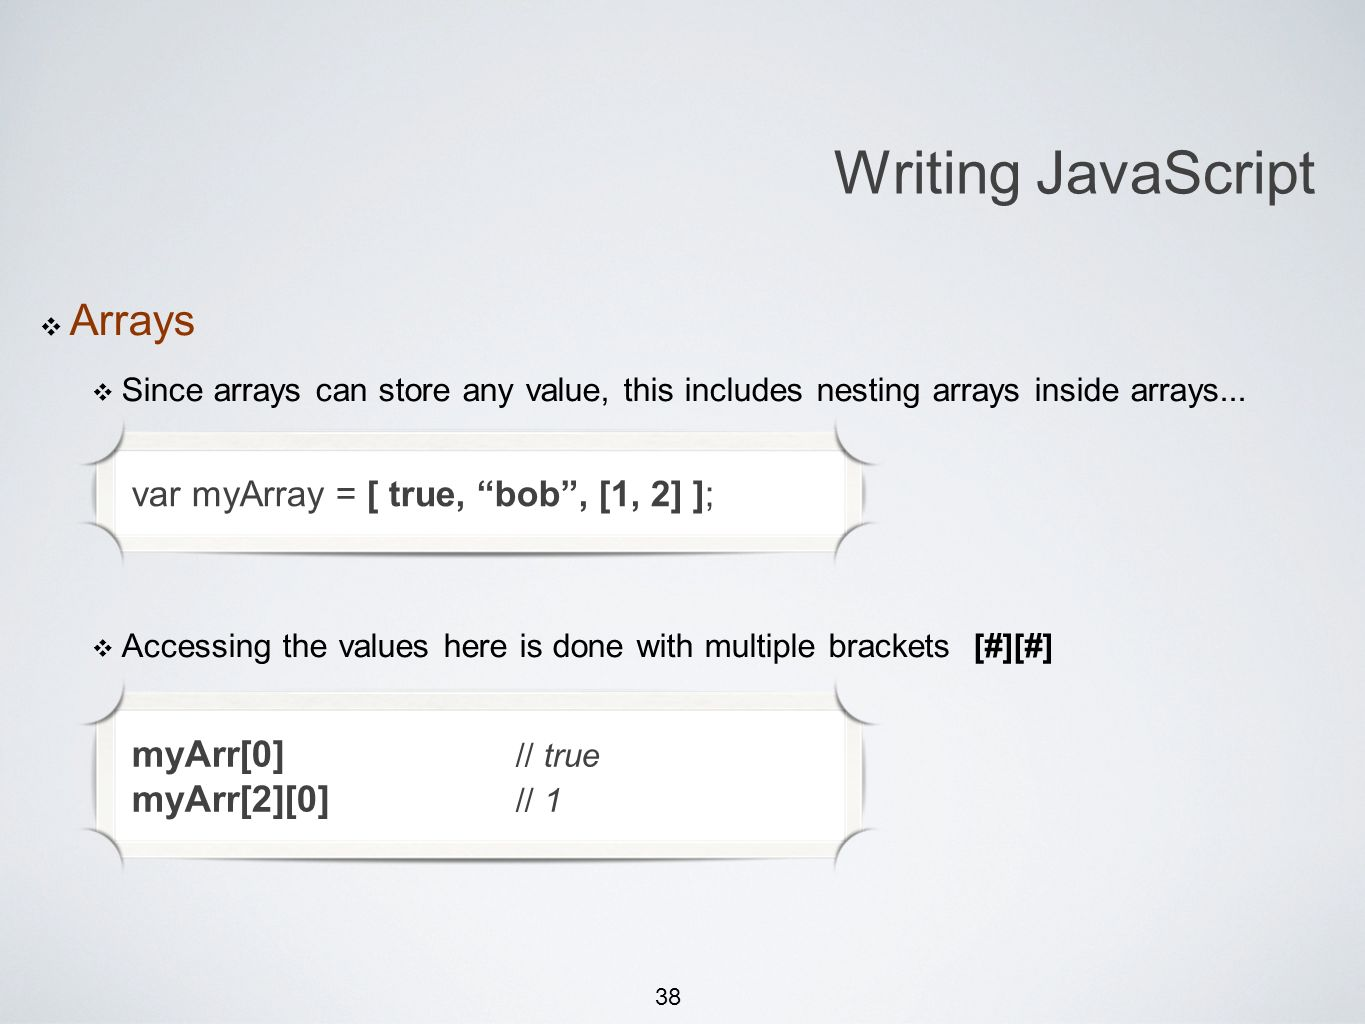 38 Michael Smotherman lectures 1:15pm FS2-207F Brandon Bombassei, Alejandro Campos labs 5pm-9pm 9pm-1am FS2-106E Writing JavaScript Arrays Since arrays can store any value, this includes nesting arrays inside arrays...